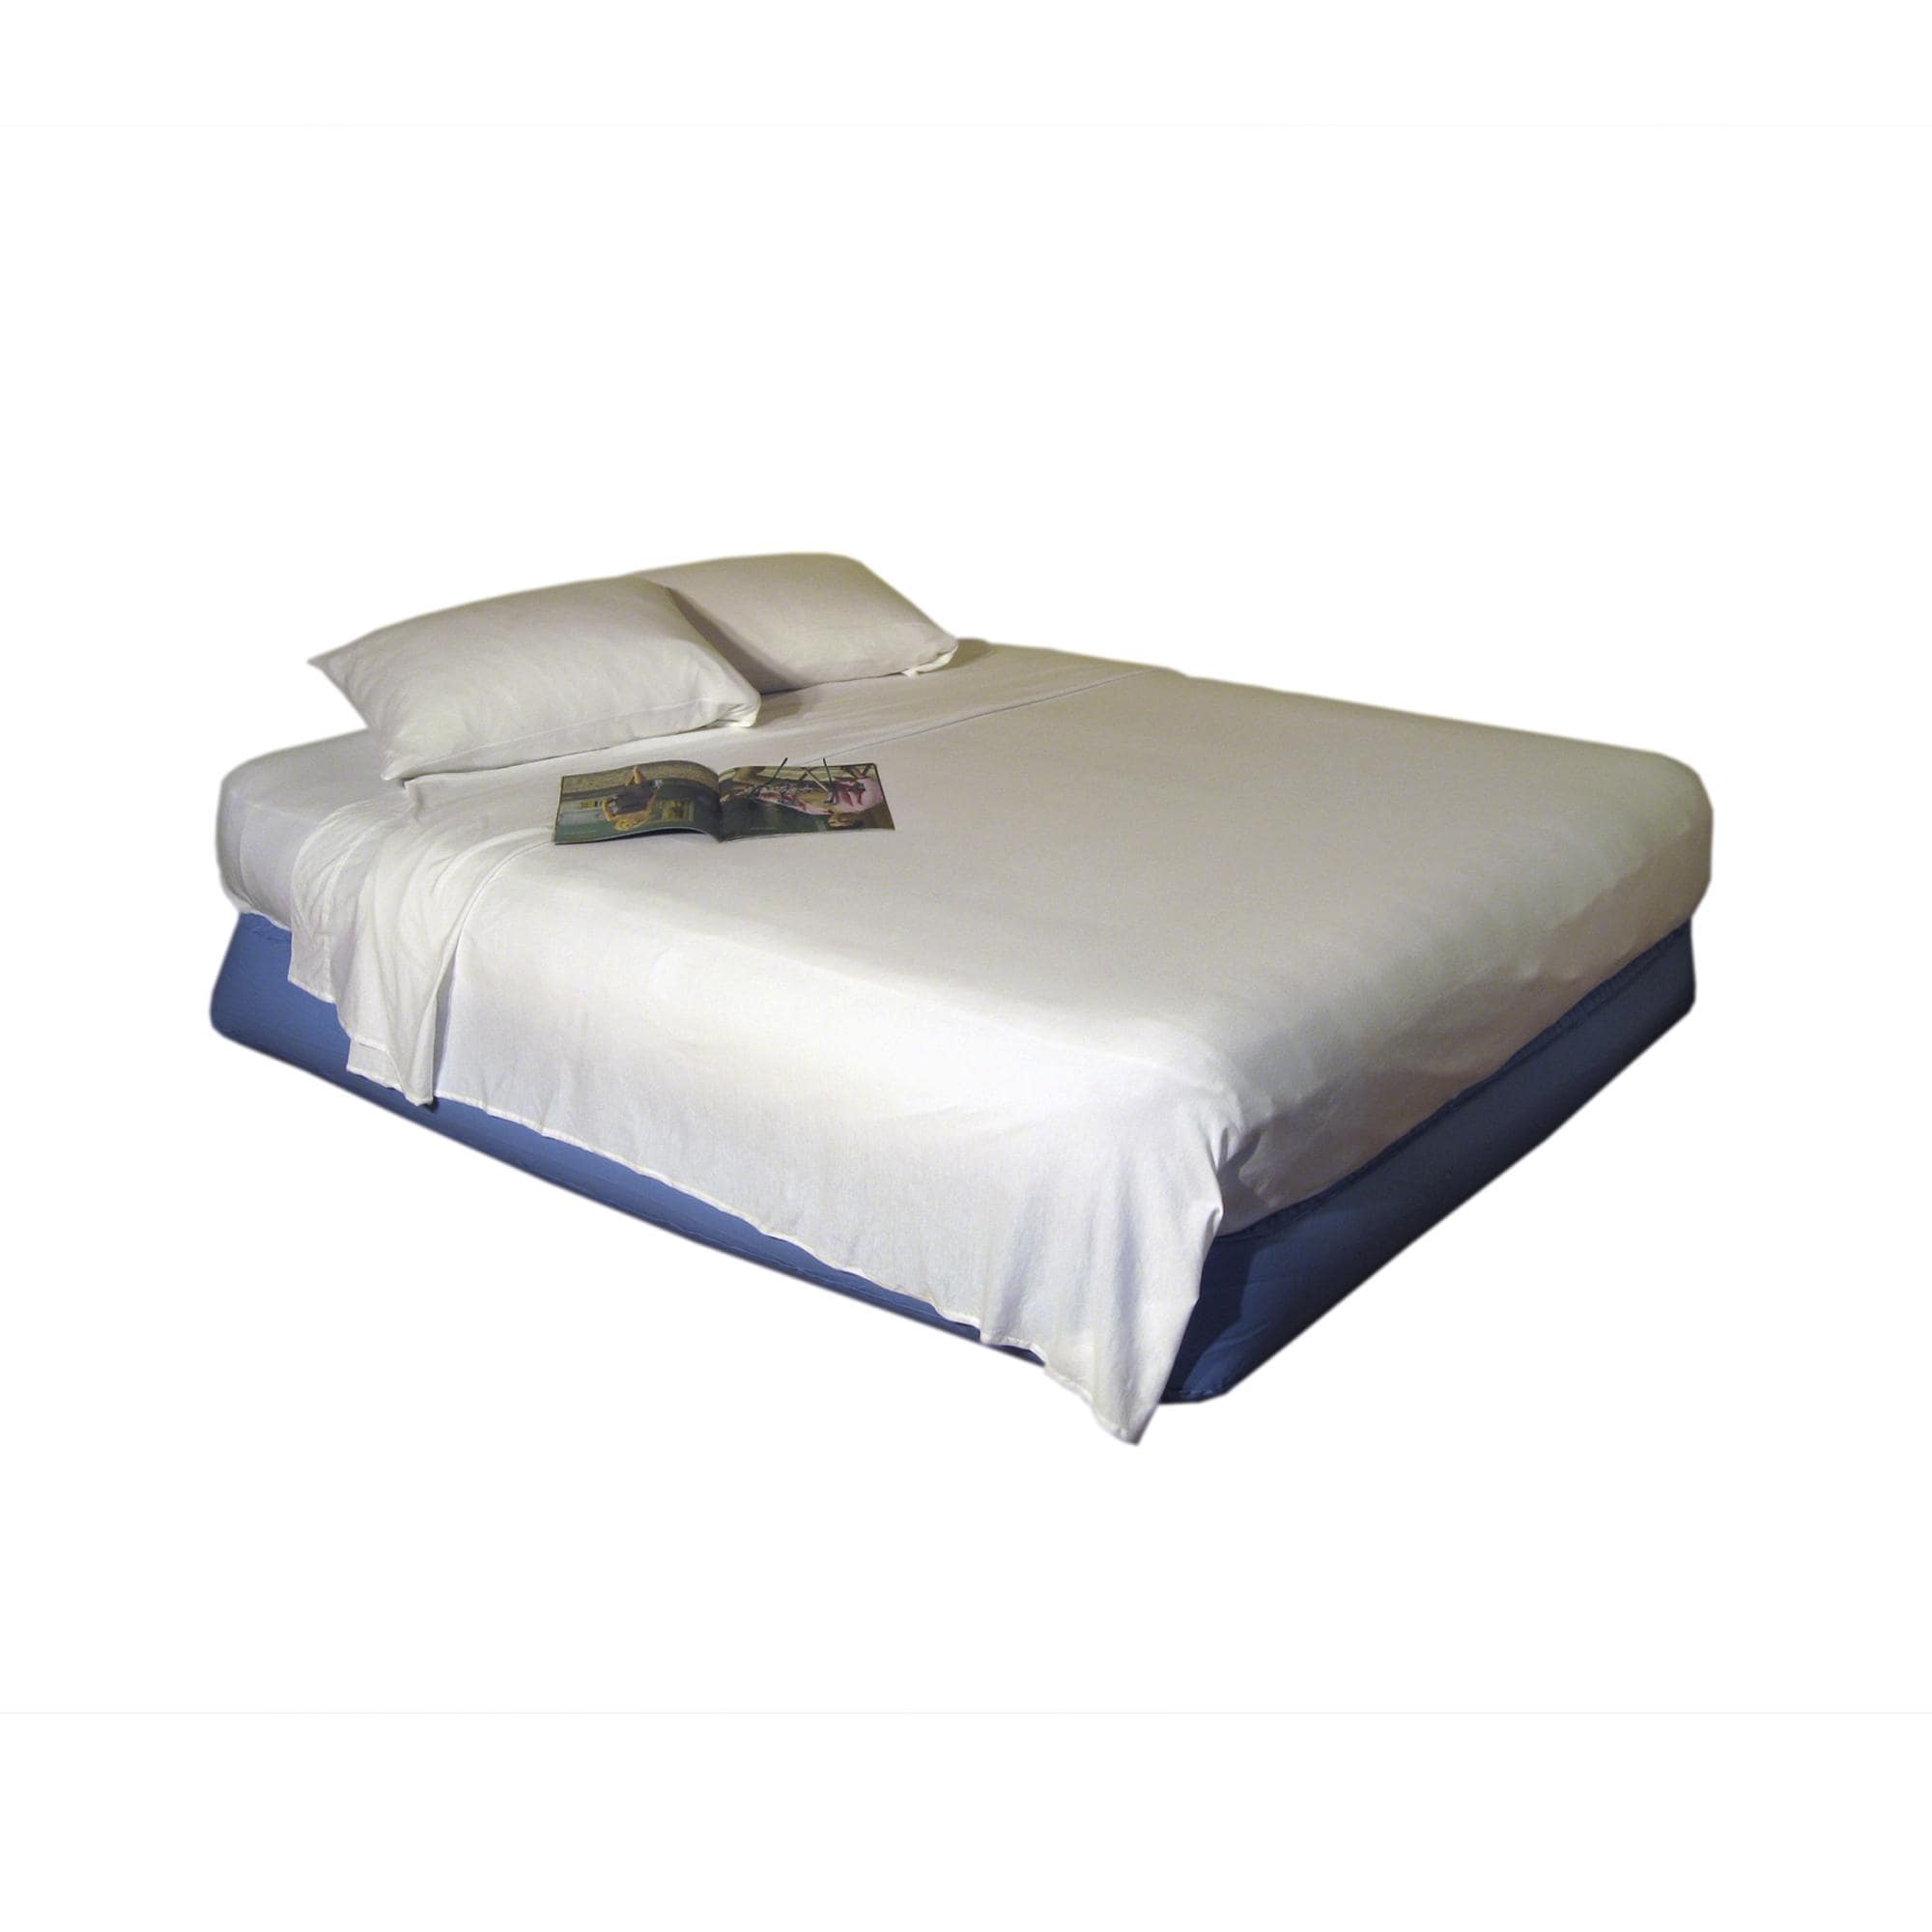 Bed sheet sets full - Full Size Airbed Cotton Jersey Sheet Set